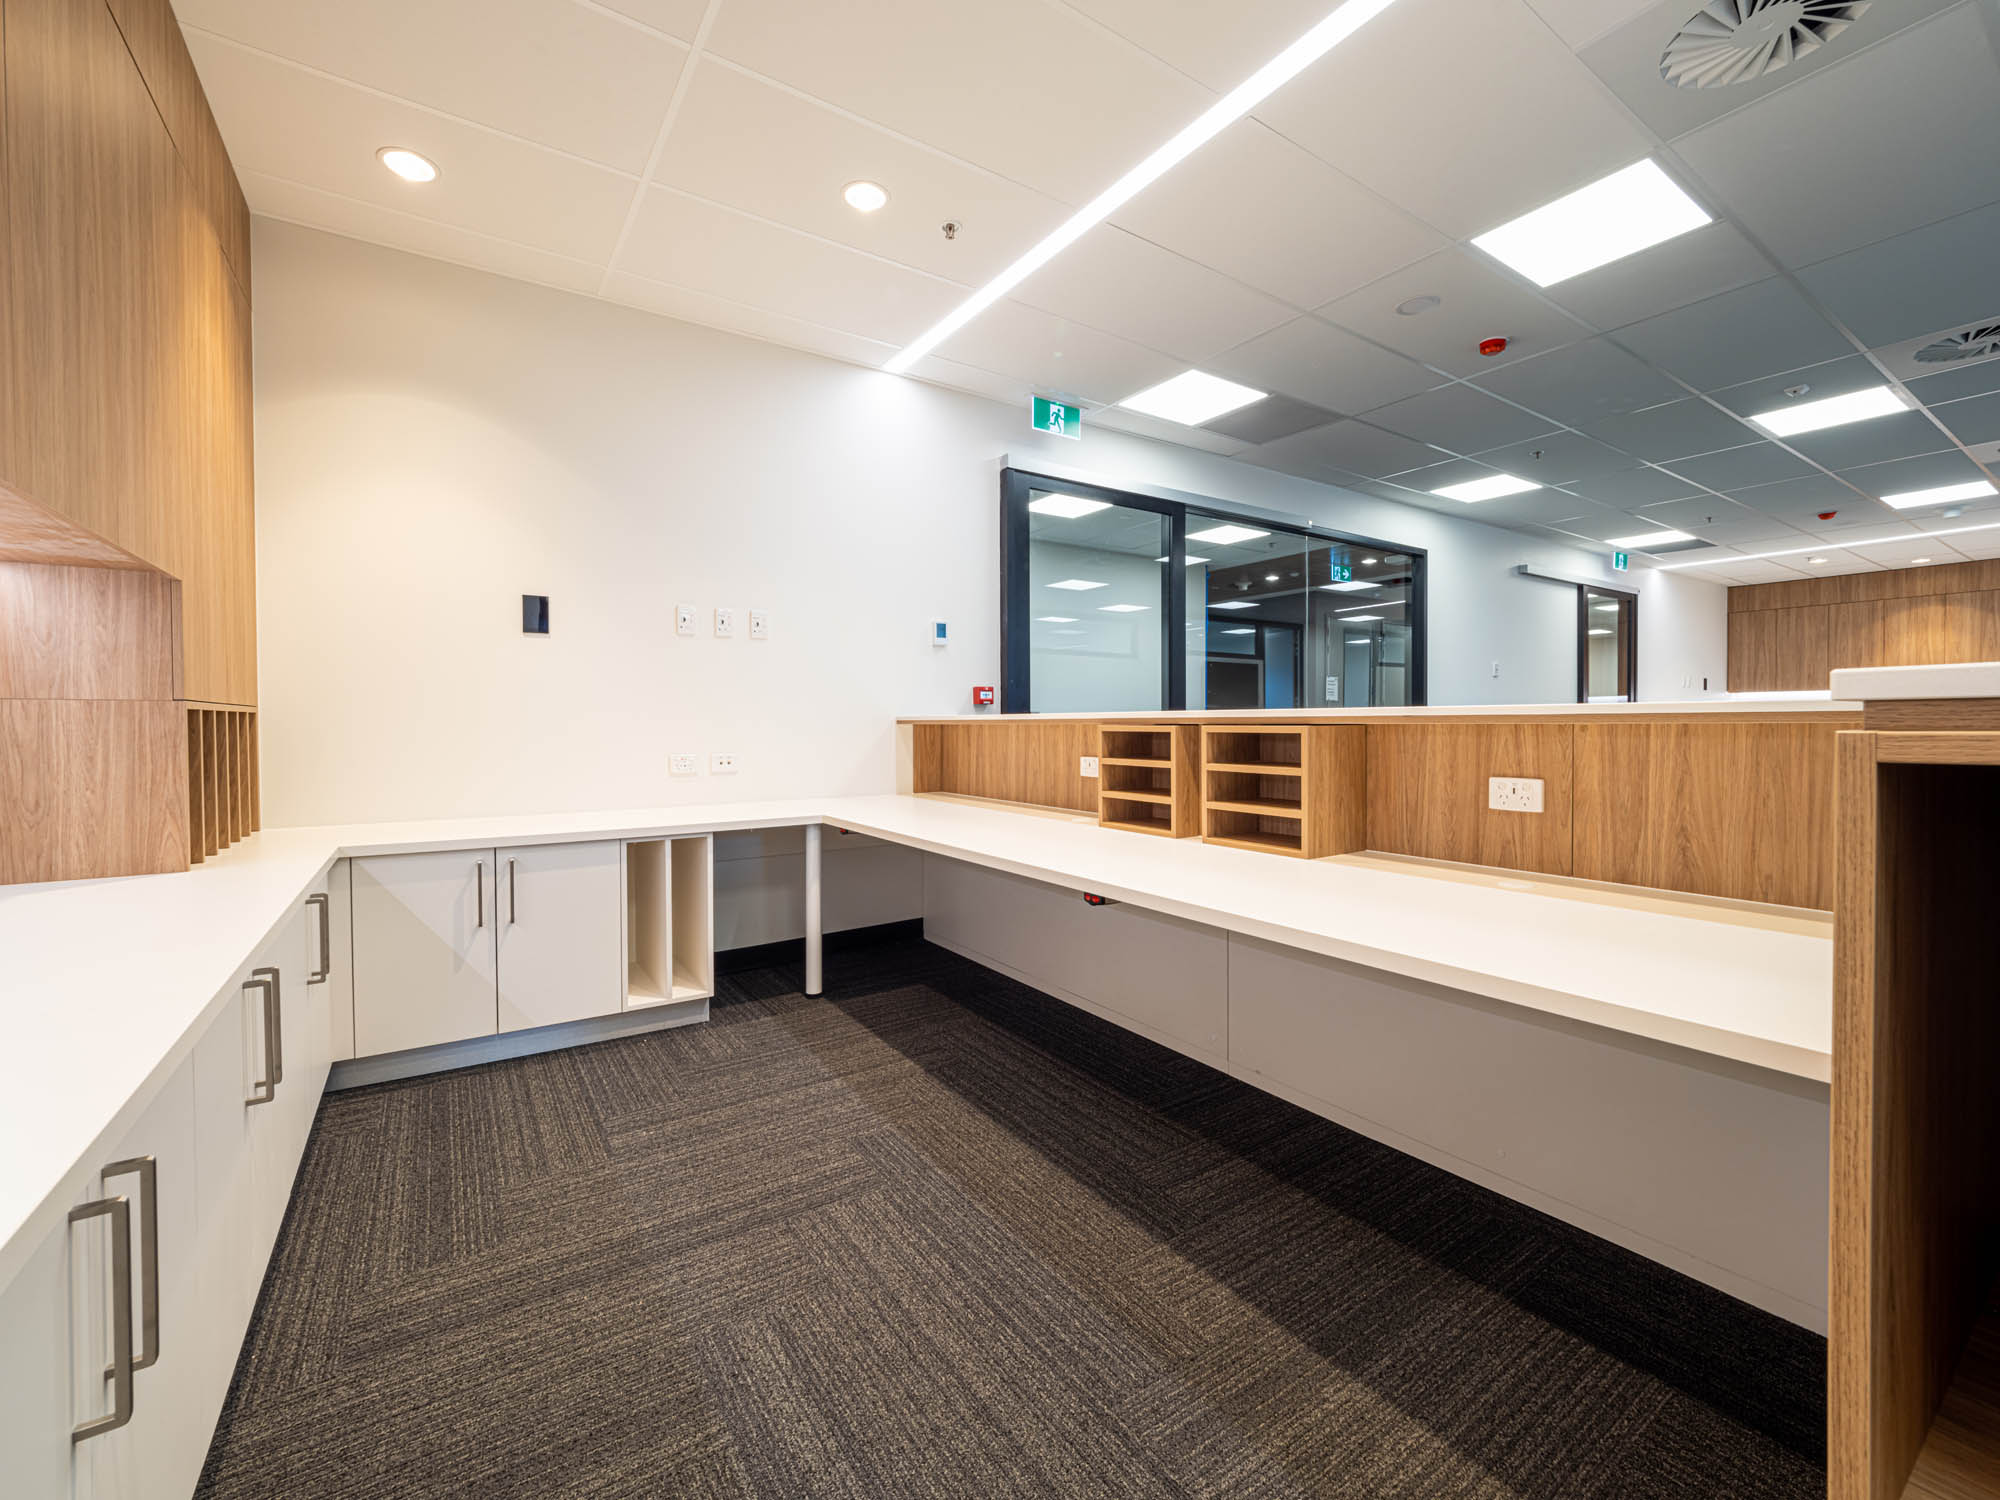 calvary adelaide hospital healthcare aged care fitout construction medical reception desk admission timber linear lighting